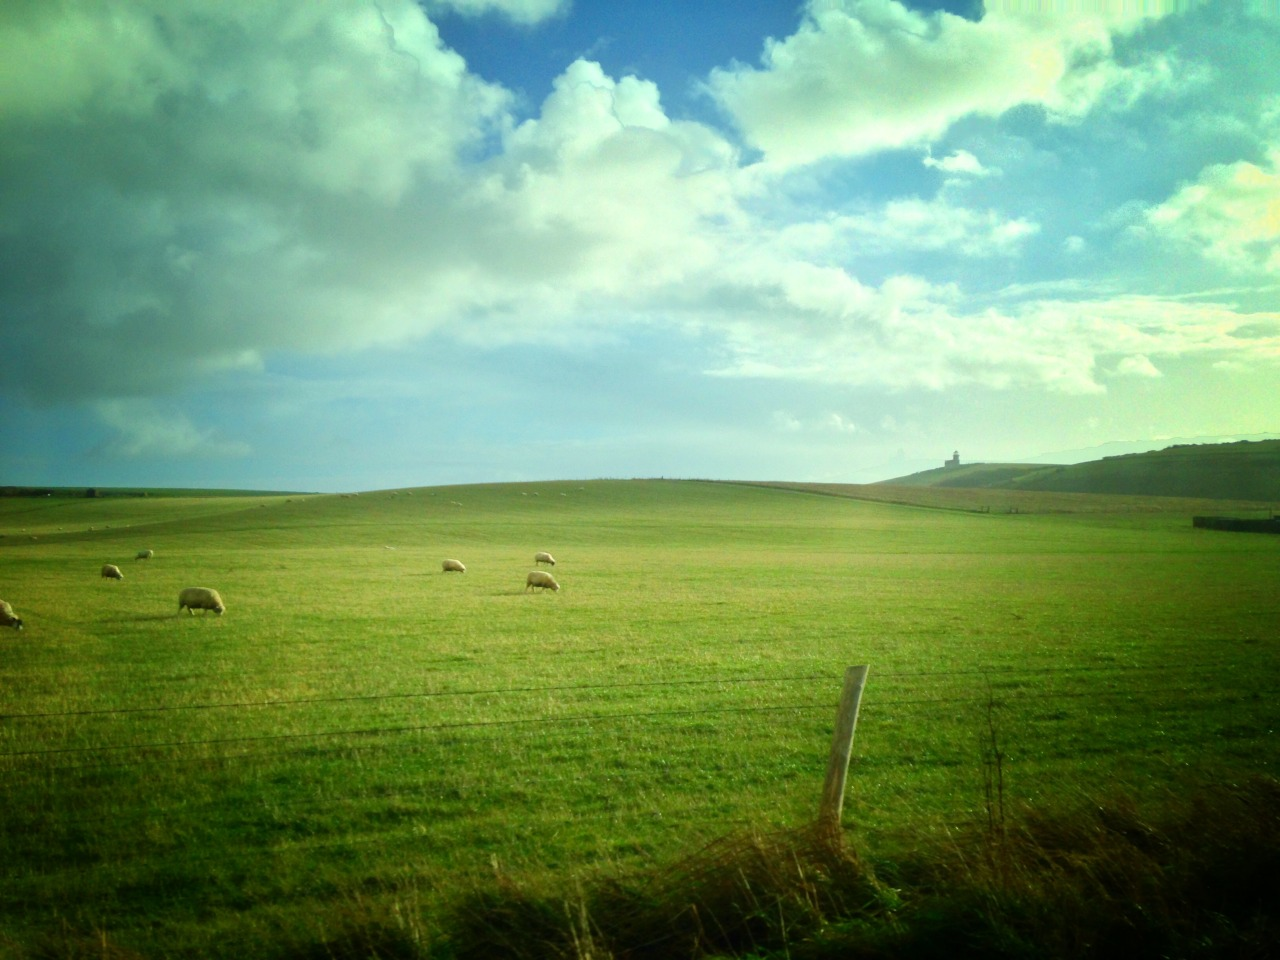 The road to Beachy Head